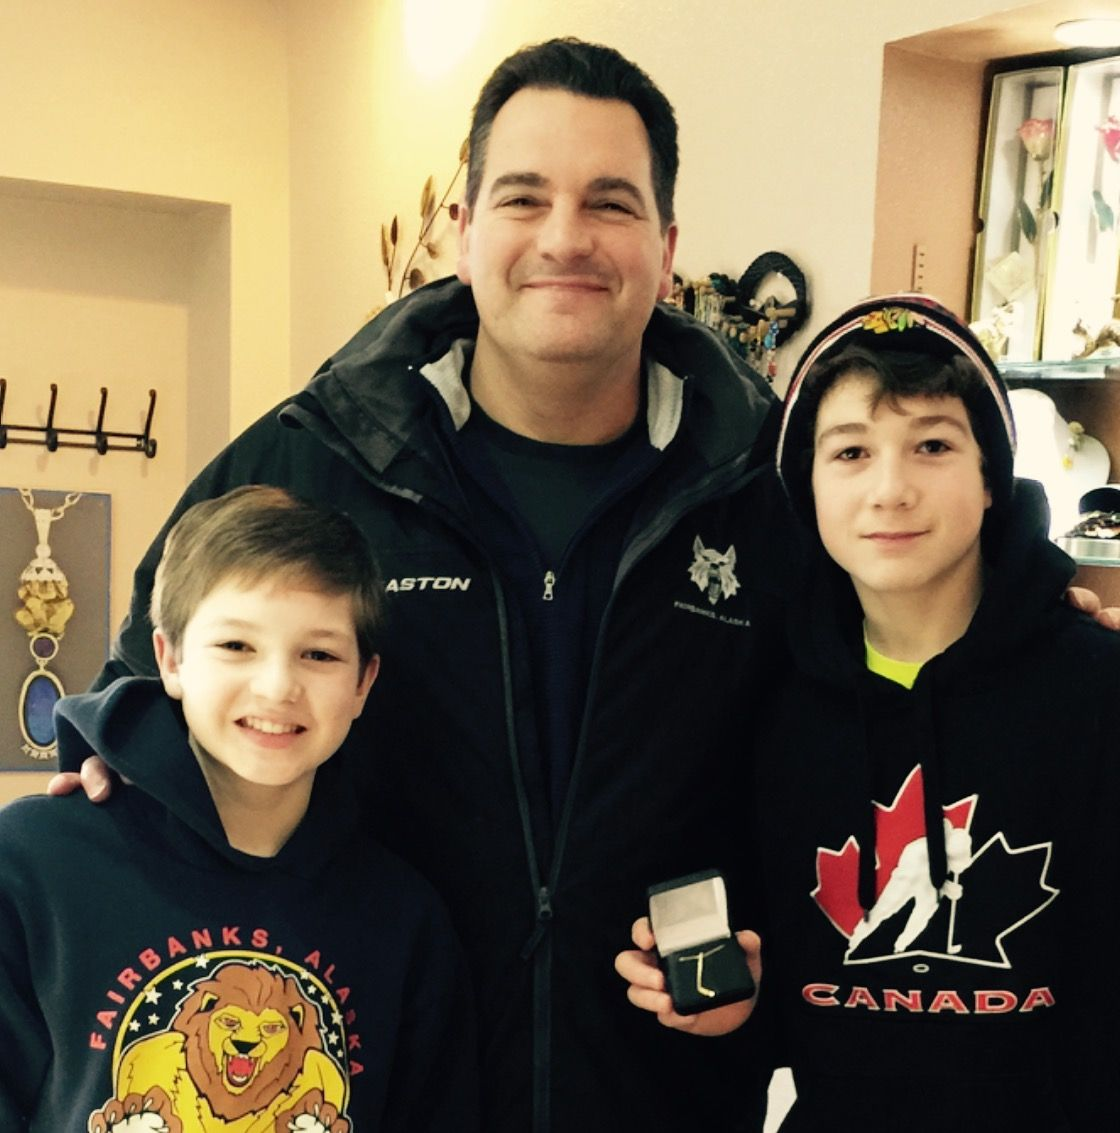 treasure hunt rink contest pay off for two families kris capps